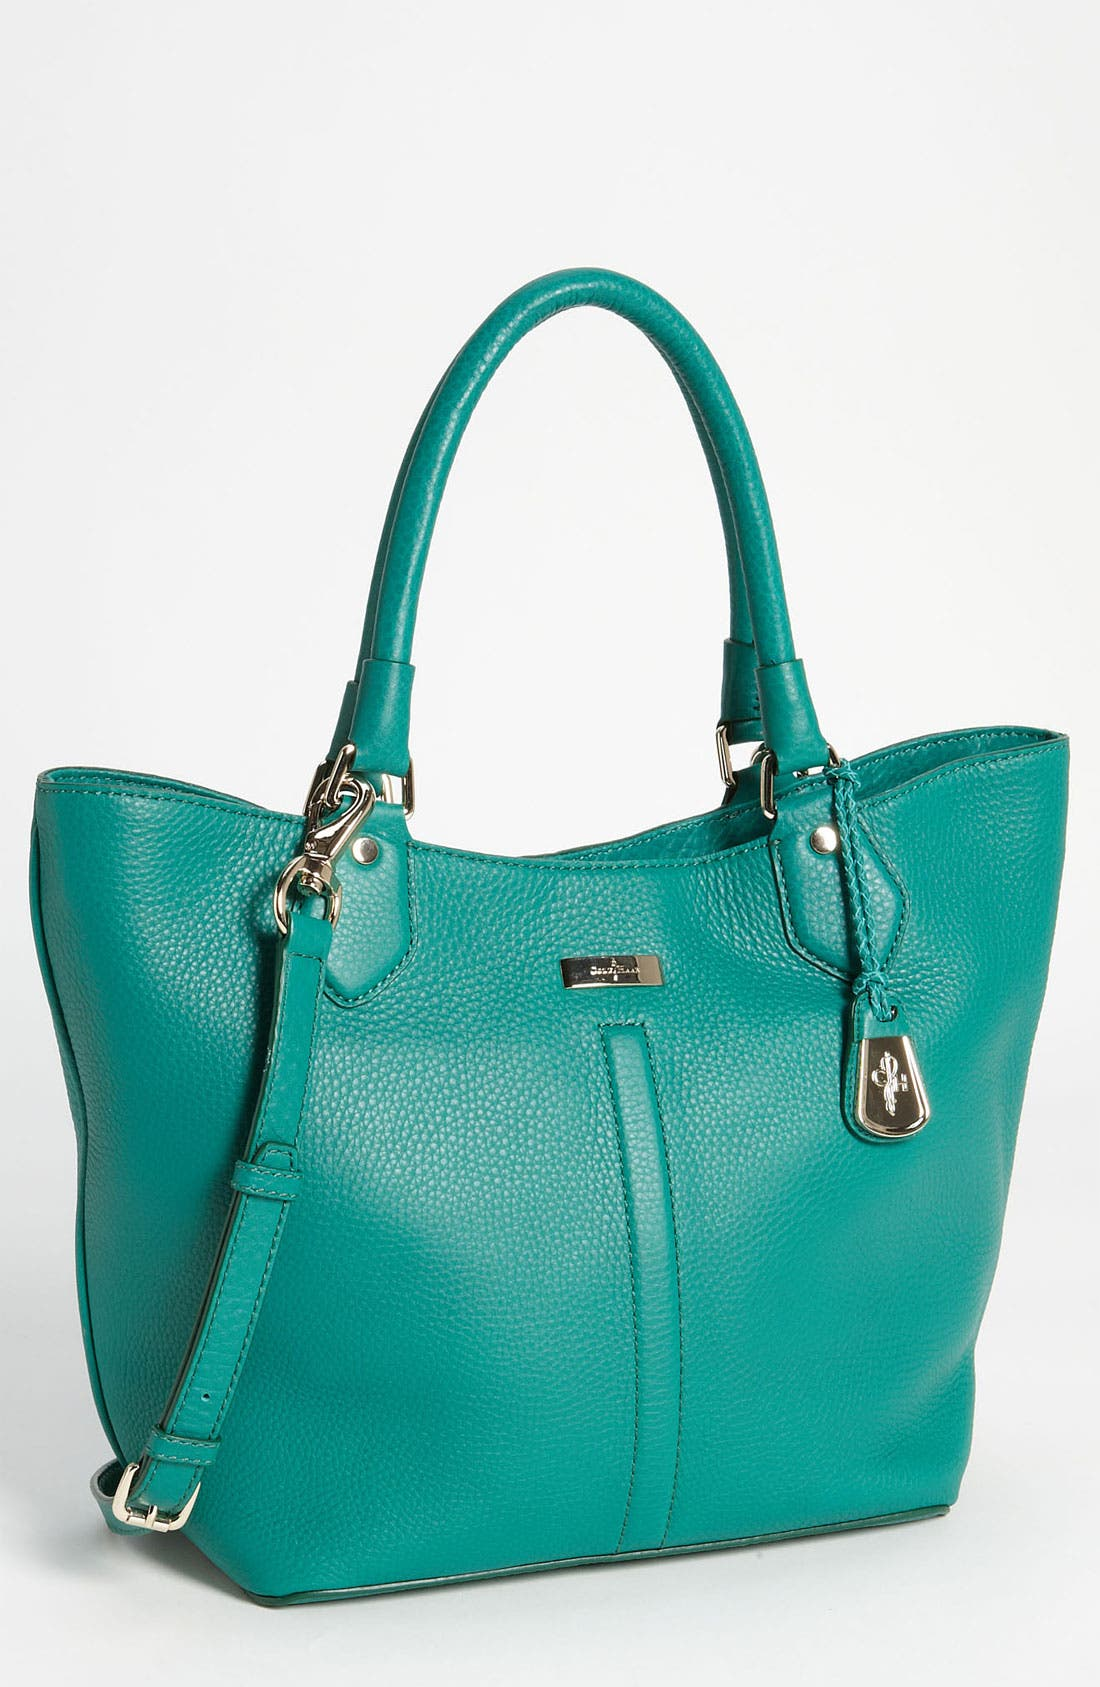 Alternate Image 1 Selected - Cole Haan 'Triangle - Small' Leather Tote